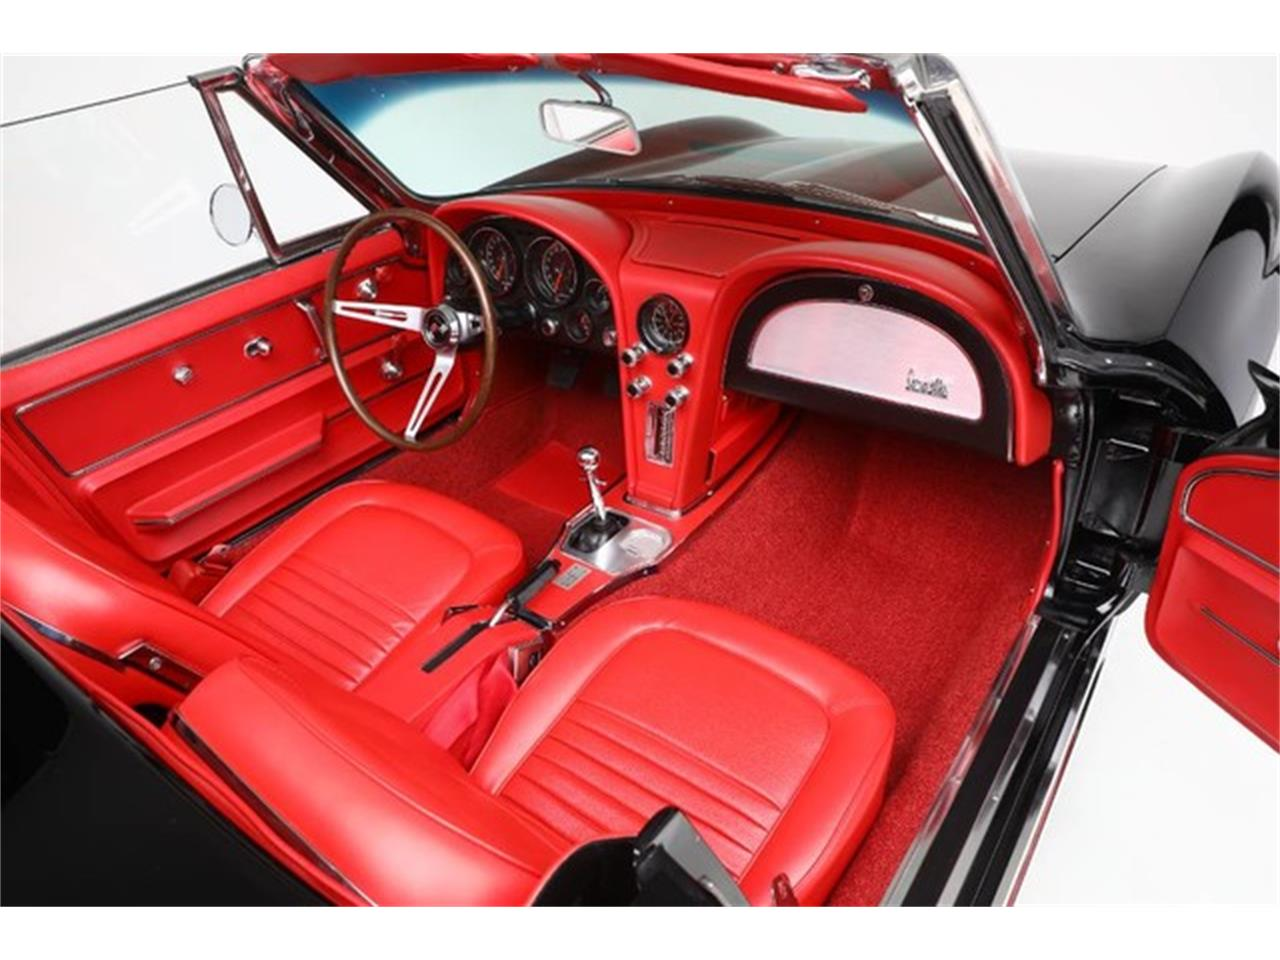 Large Picture of Classic 1967 Chevrolet Corvette located in Clifton Park New York Auction Vehicle Offered by Prestige Motor Car Co. - PU42